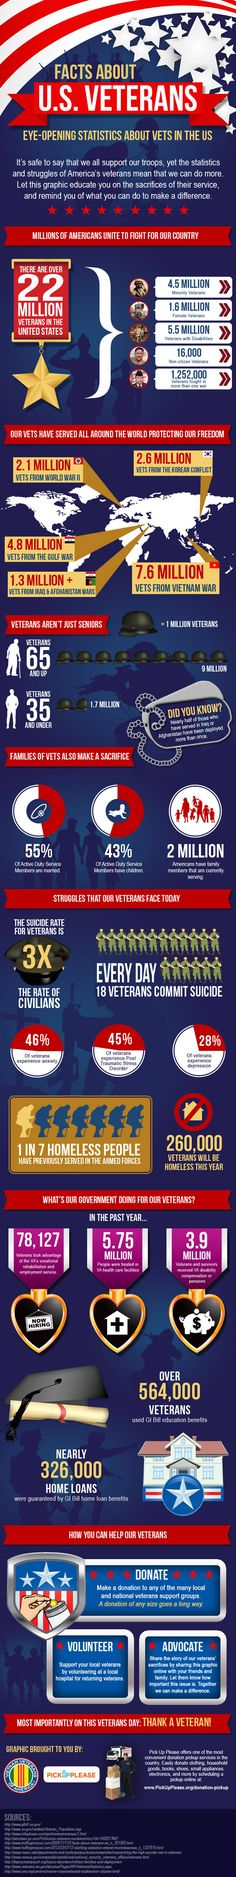 2012: Facts About Veterans http://medicare-supplement.biz found this on www.veteransnewsnow.com